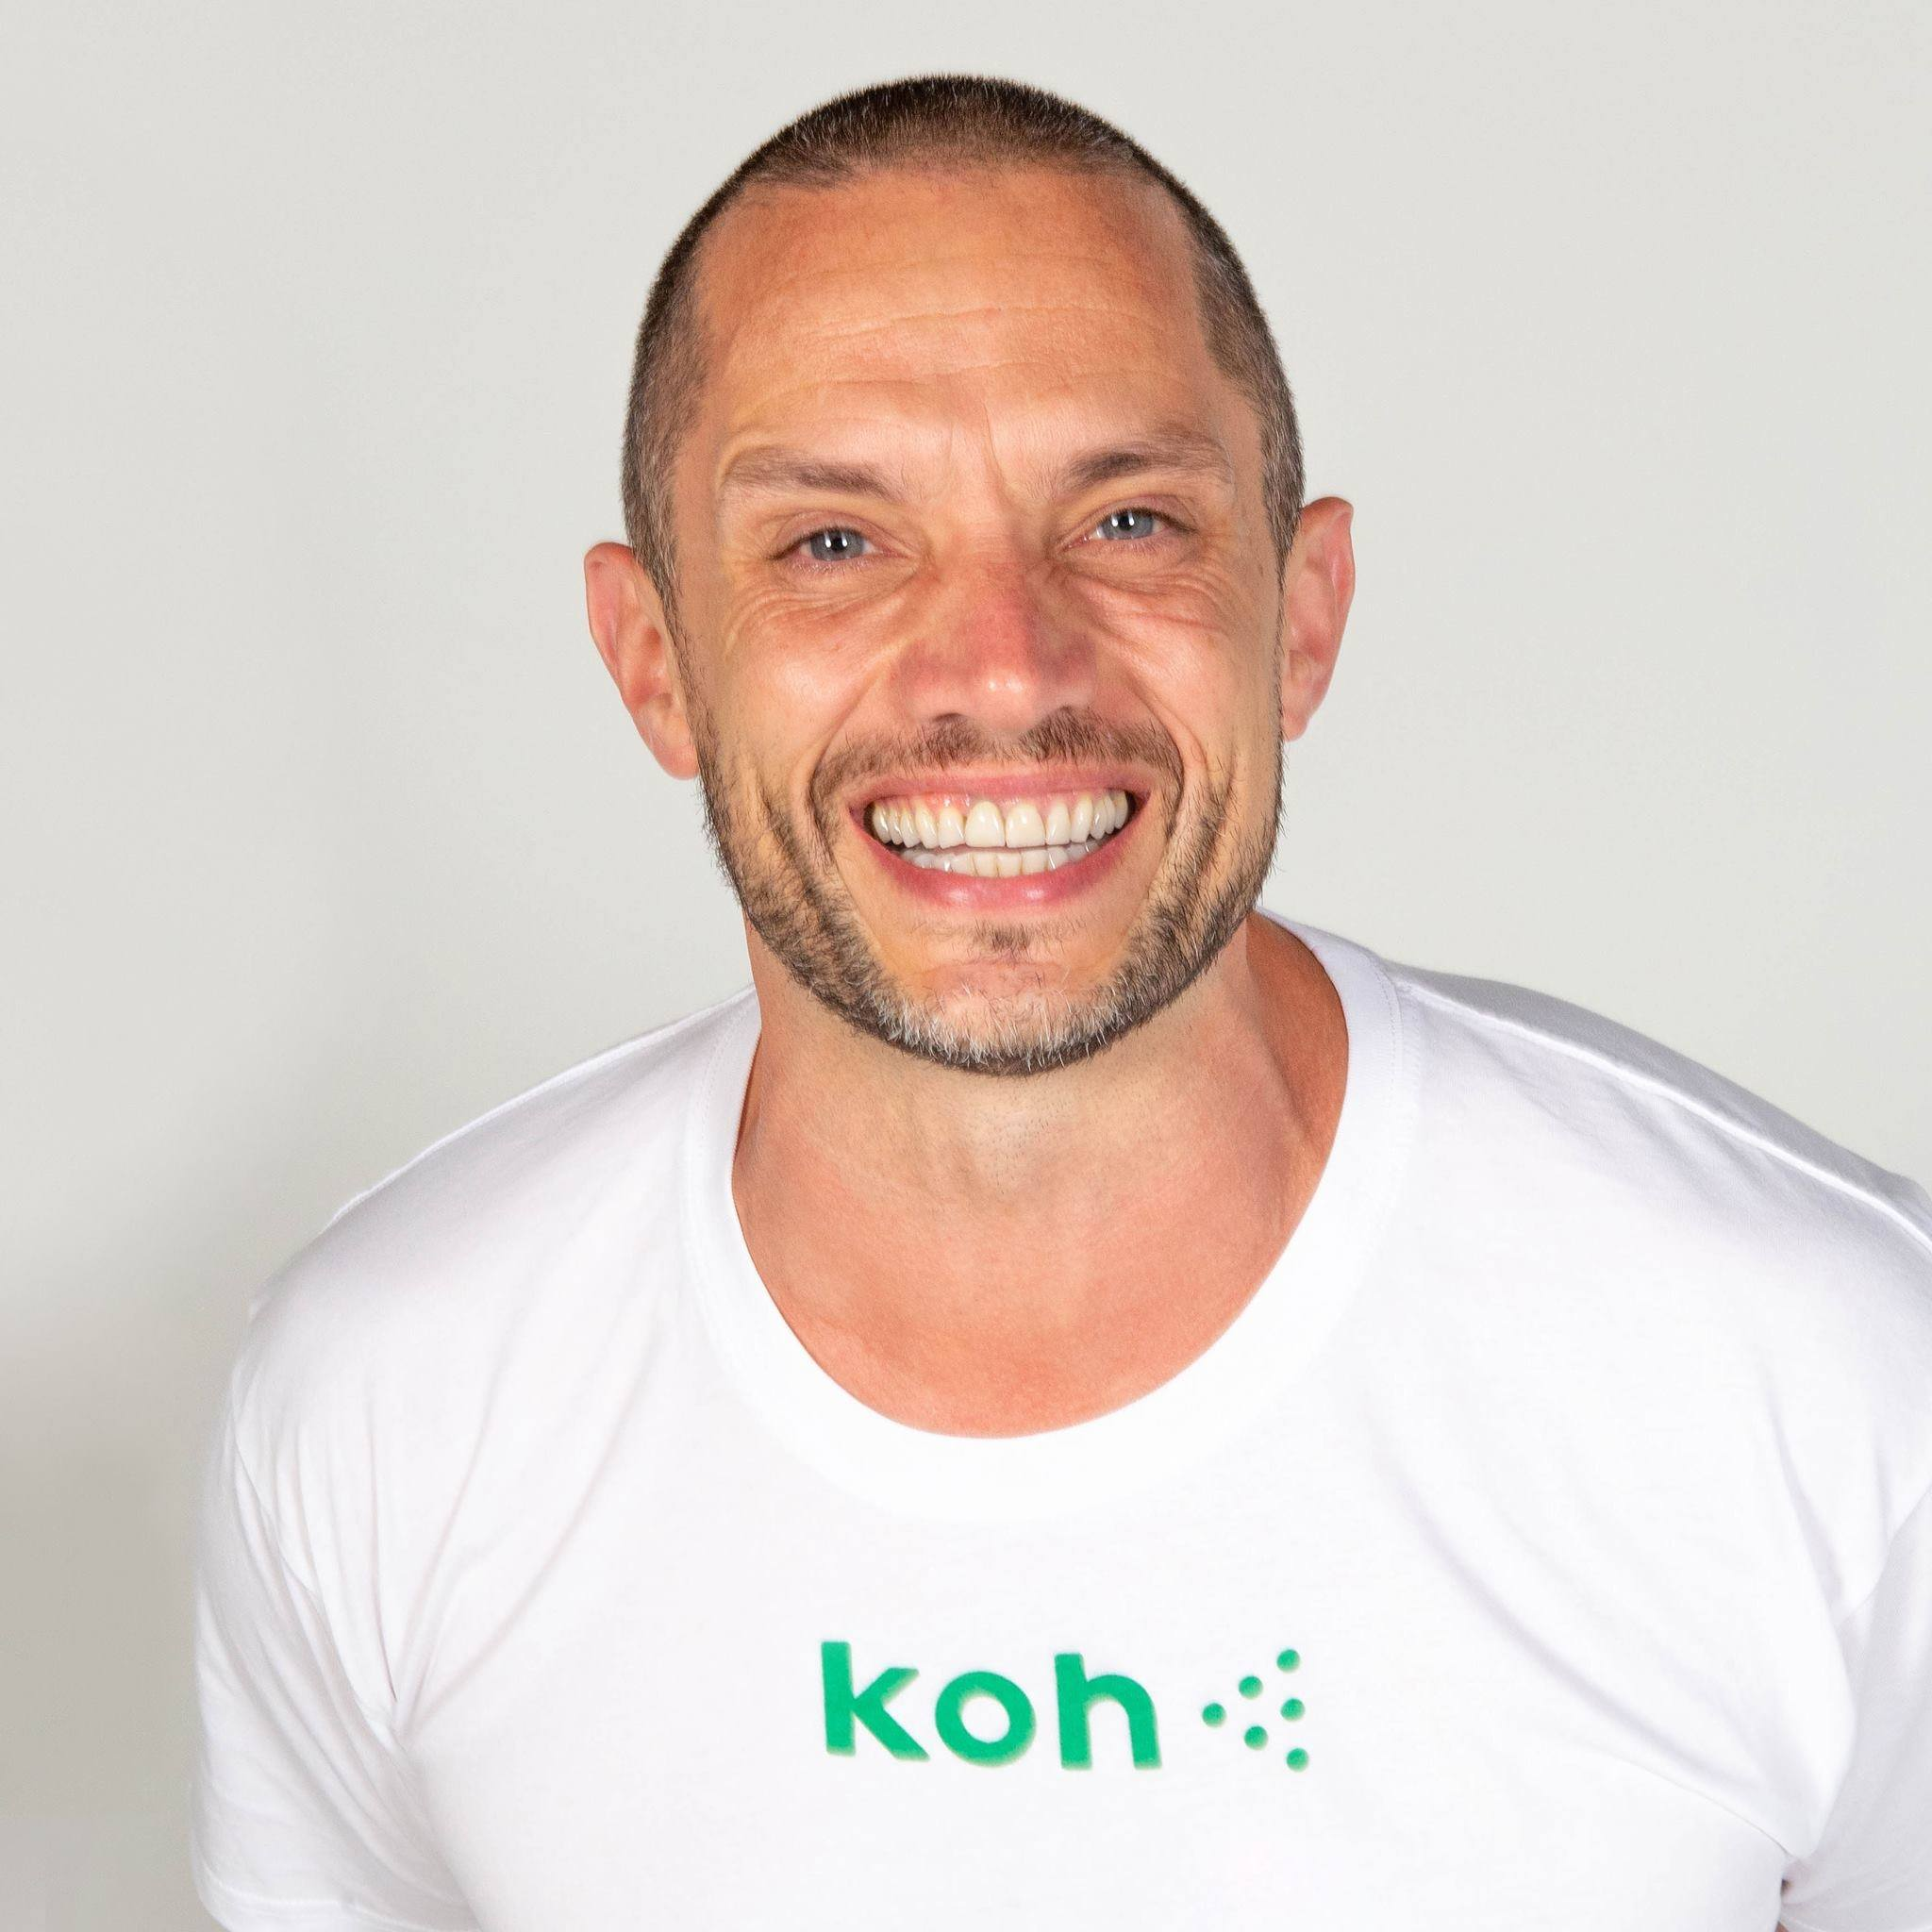 Online Retailers Koh & Kogan Share Top E-Commerce Tips